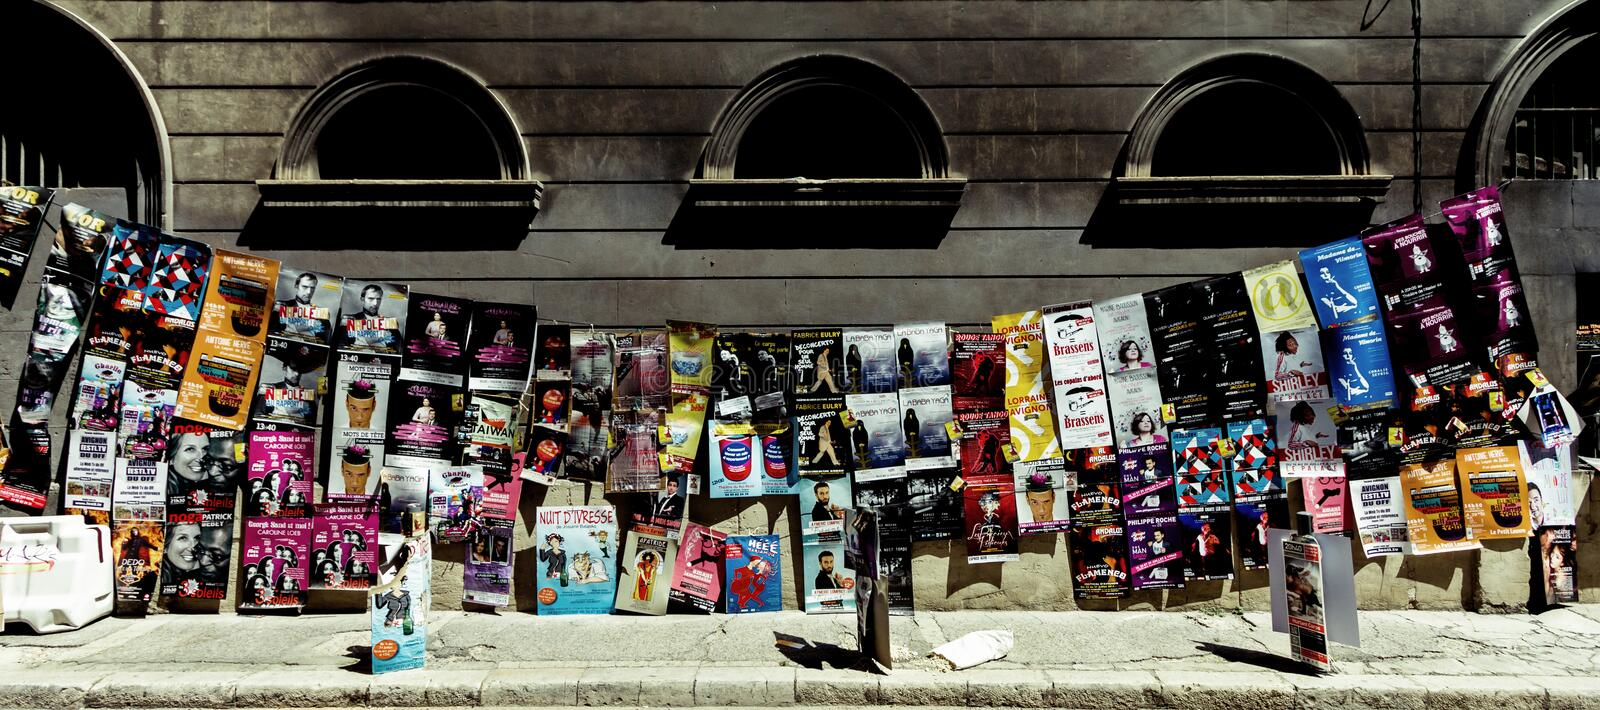 Avignon theatre festival posters royalty free stock photography